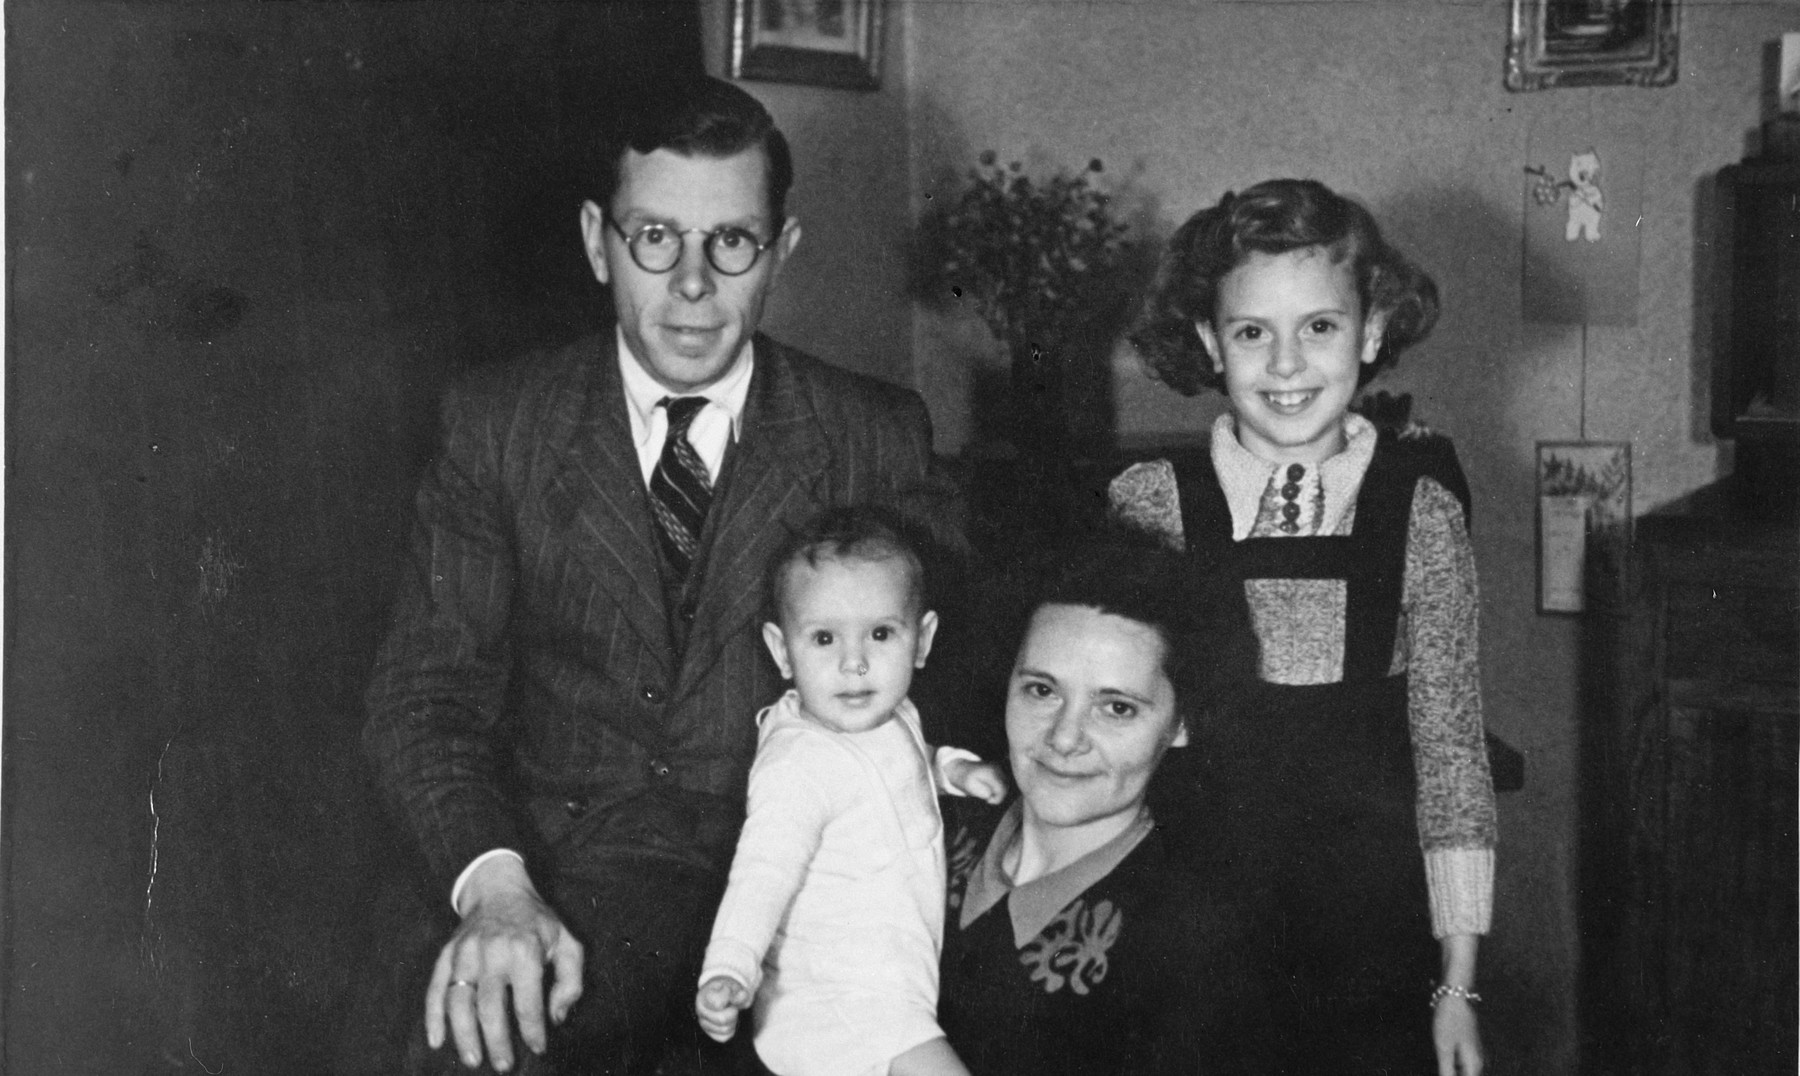 Portrait of a half-Jewish family shortly after liberation.  Pictured are Jan and Maria Braat holding their new infant son, Rene, and their nine year old daughter Betty.